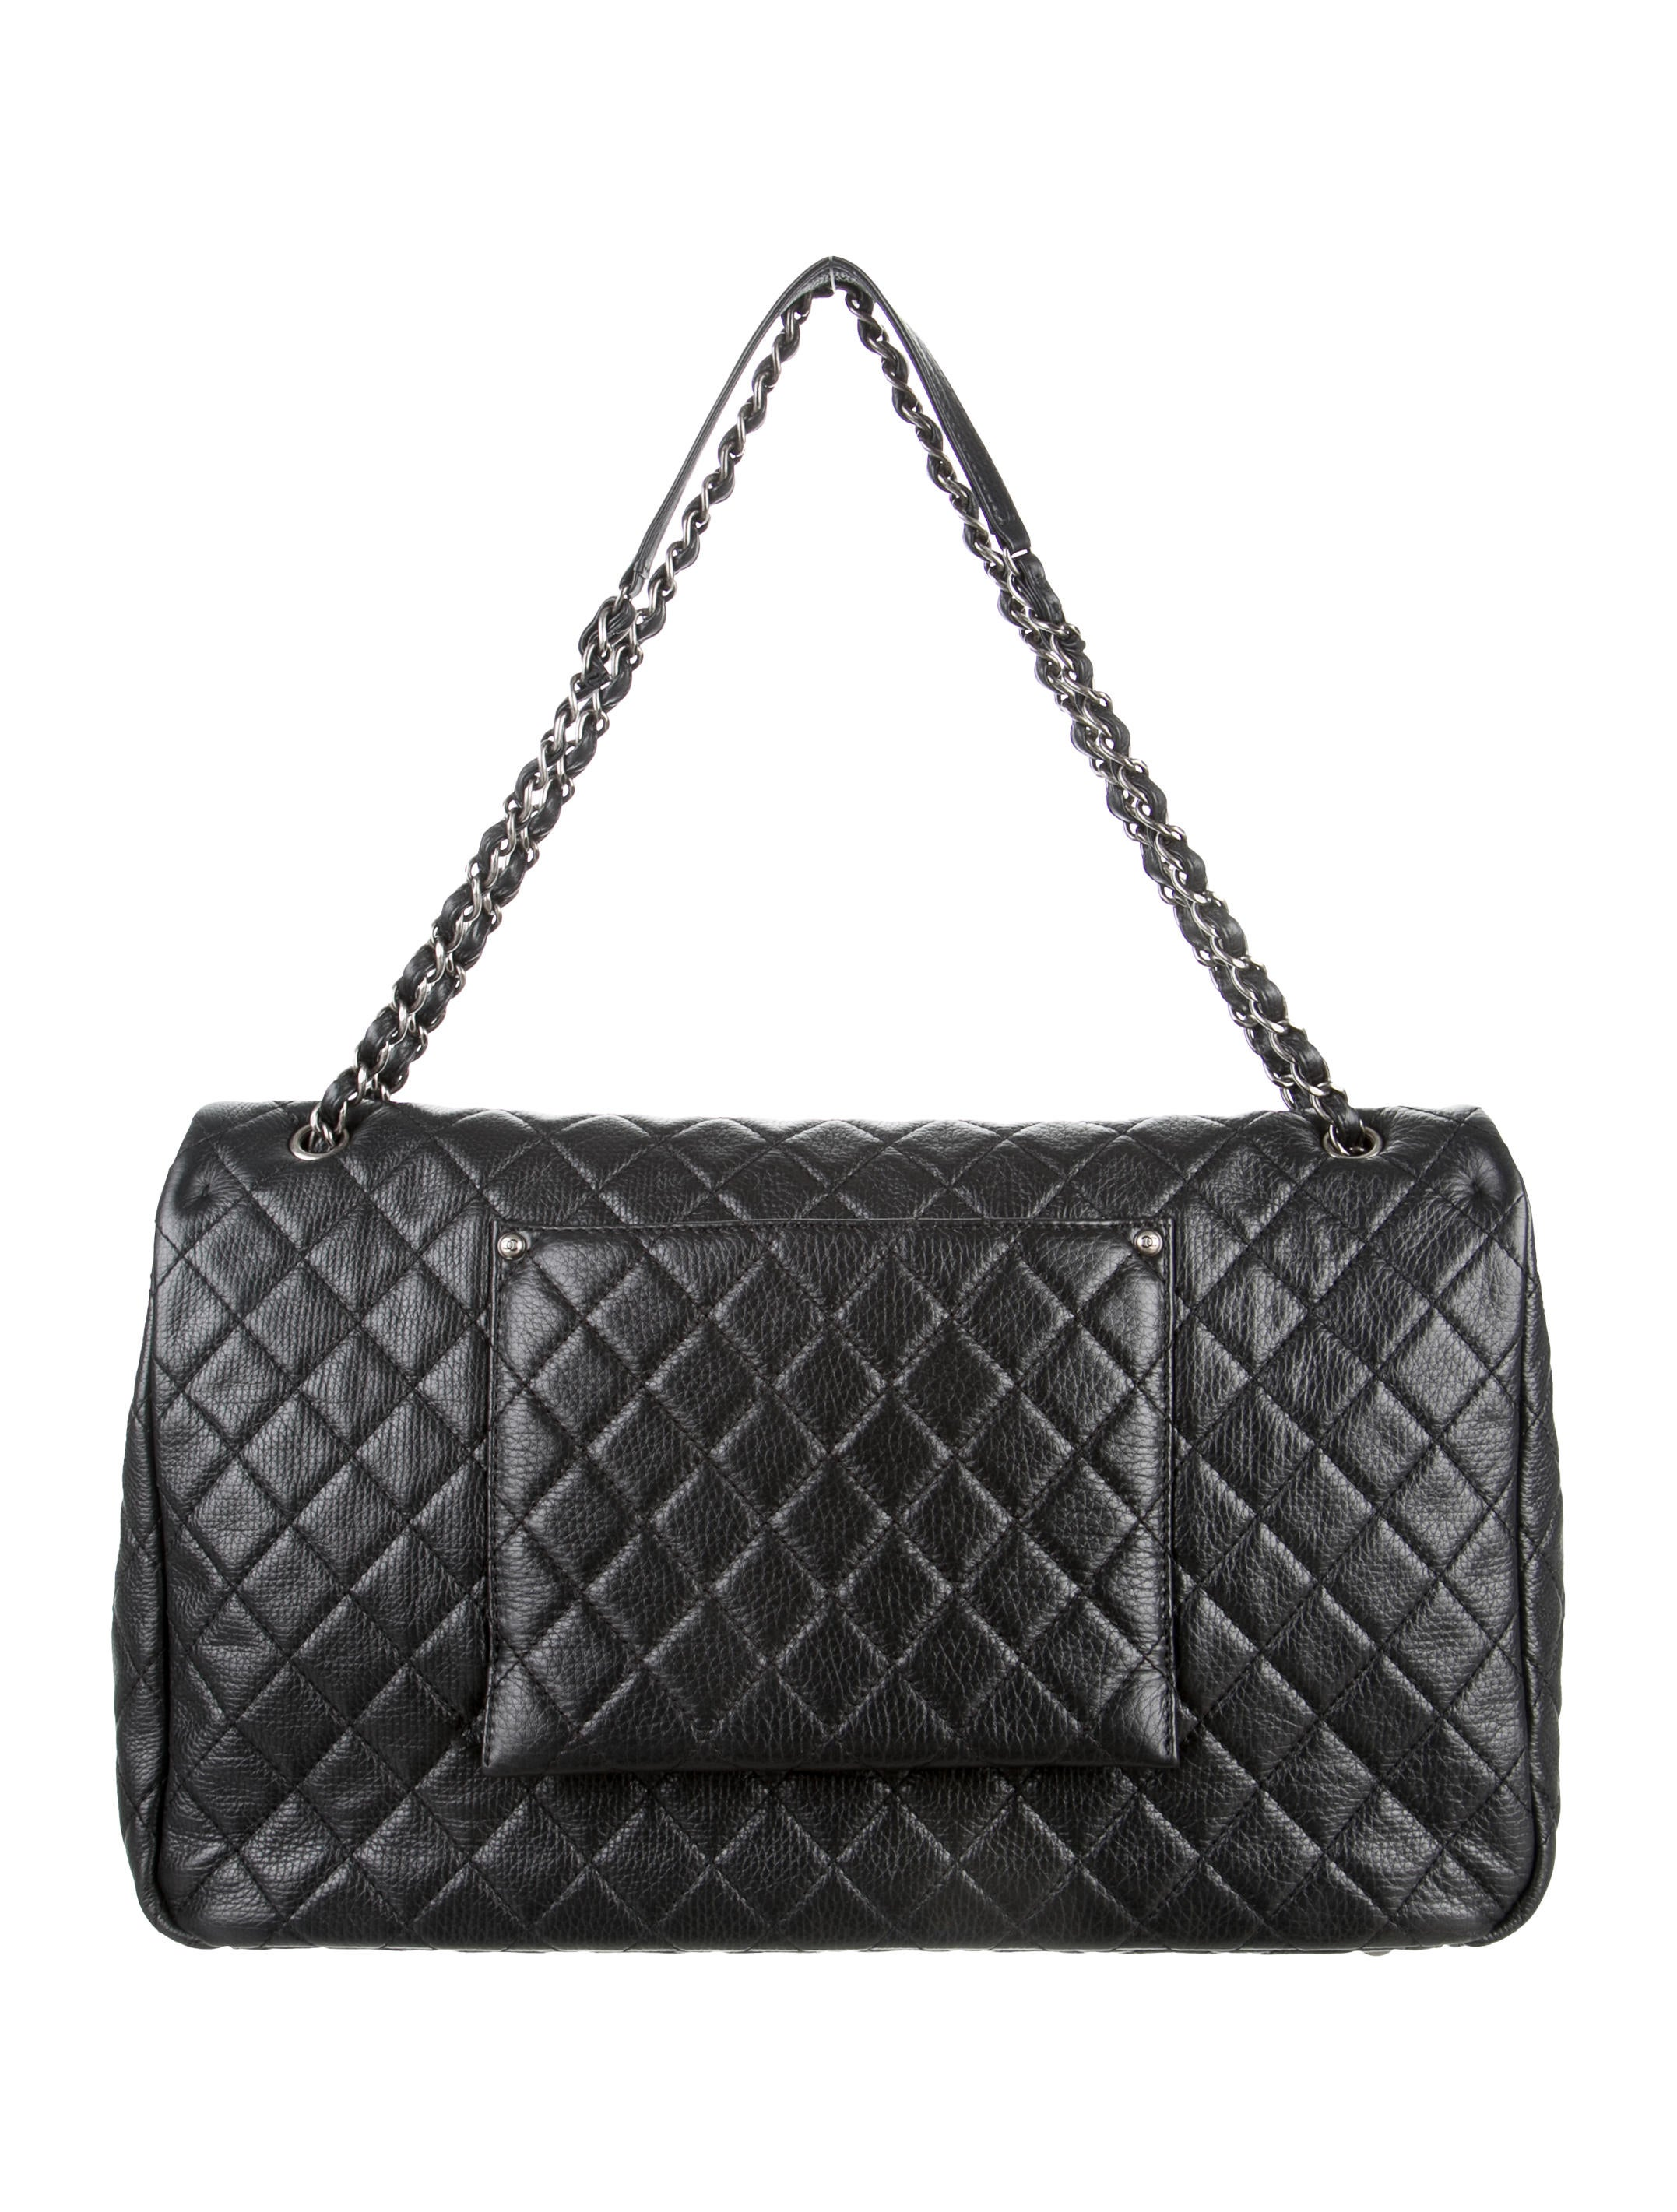 341e827dcdea Chanel Xxl Purses | Stanford Center for Opportunity Policy in Education